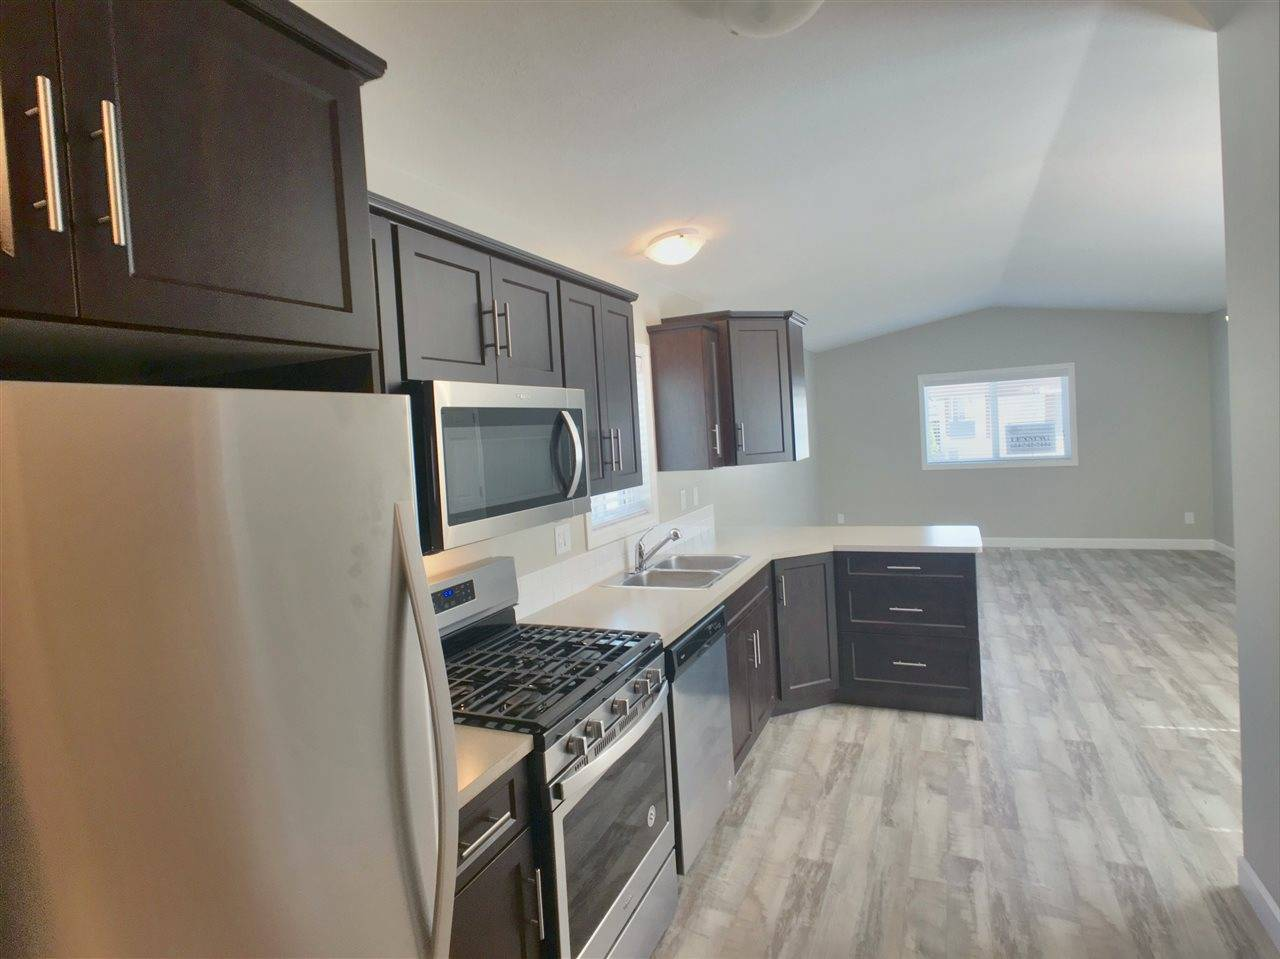 Residential property for sale at 24330 Fraser Hy Unit 22 Langley British Columbia - MLS: R2358913